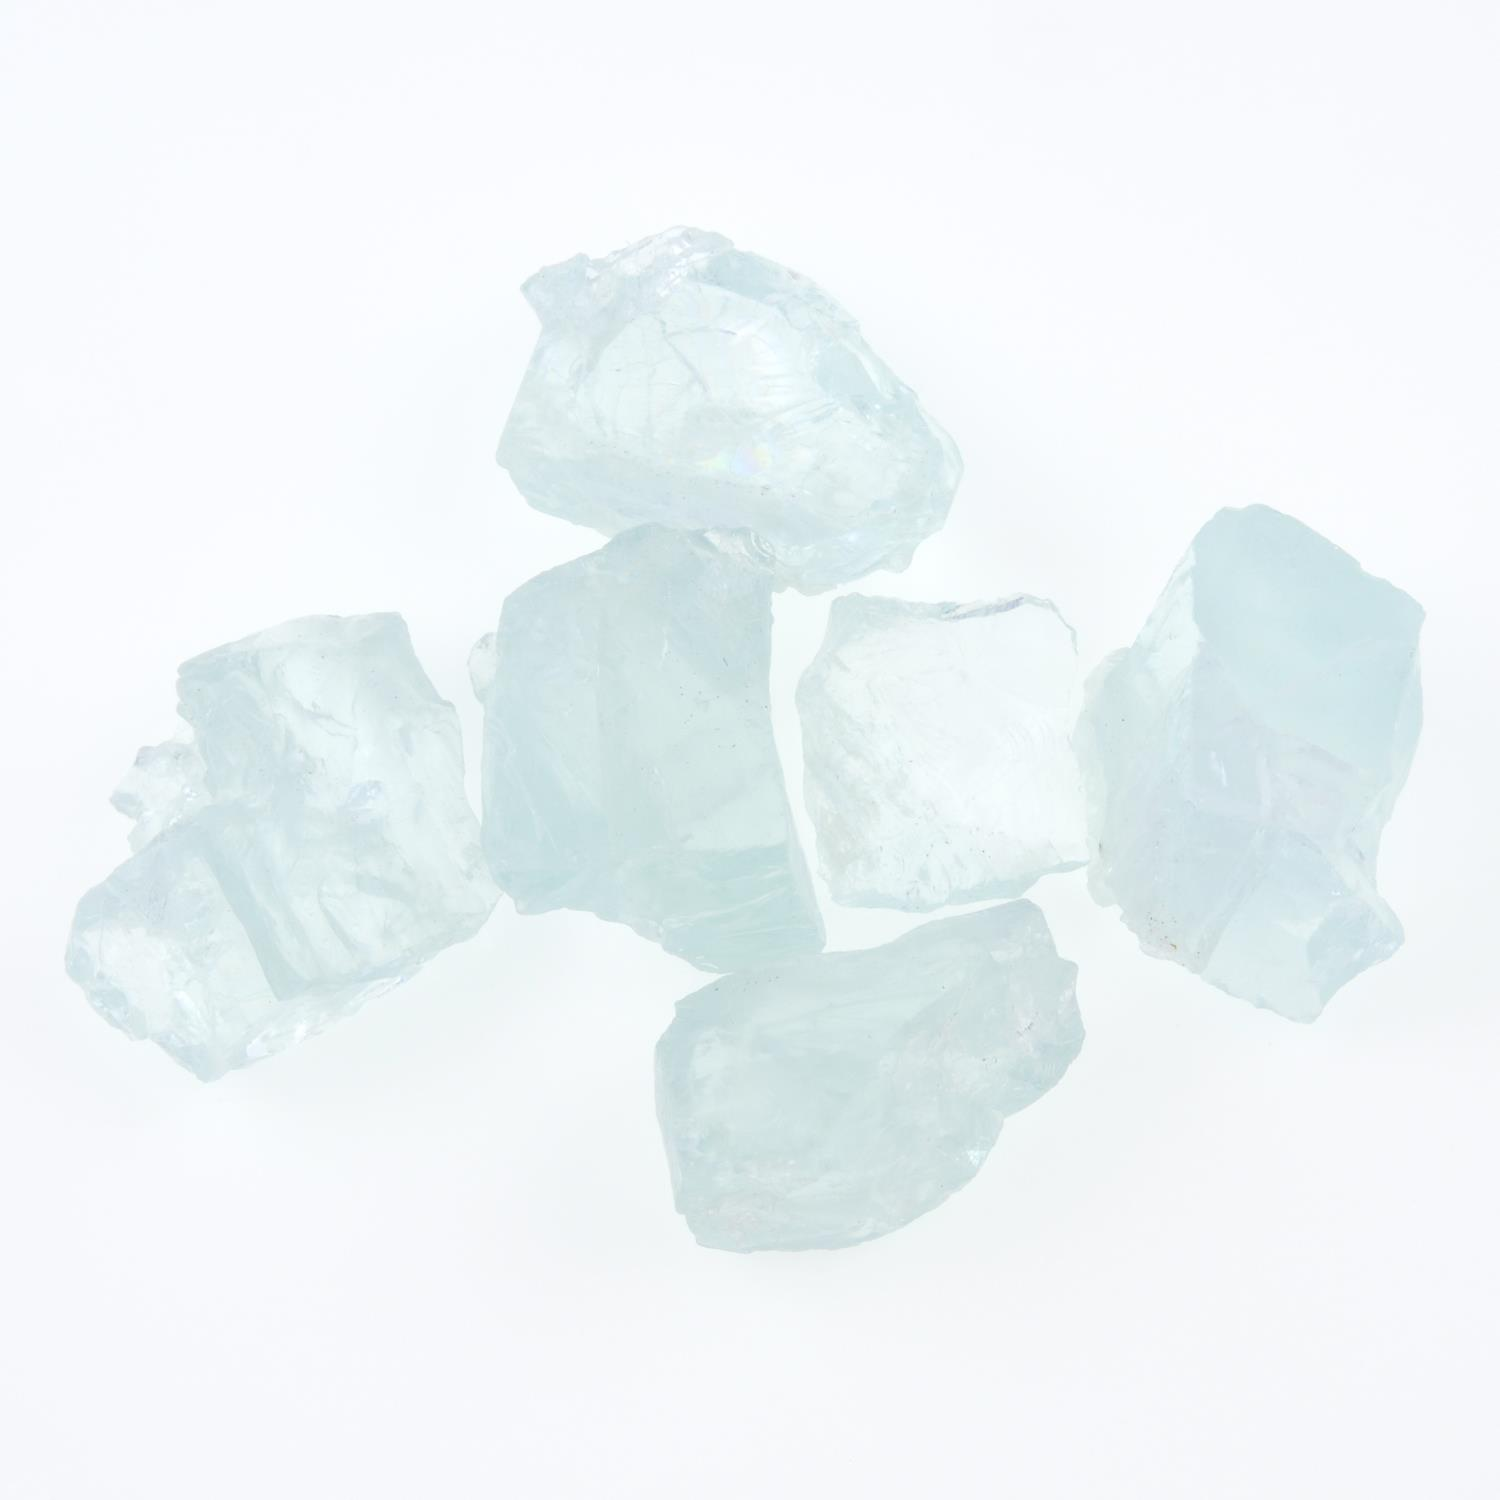 A selection of rough aquamarines.